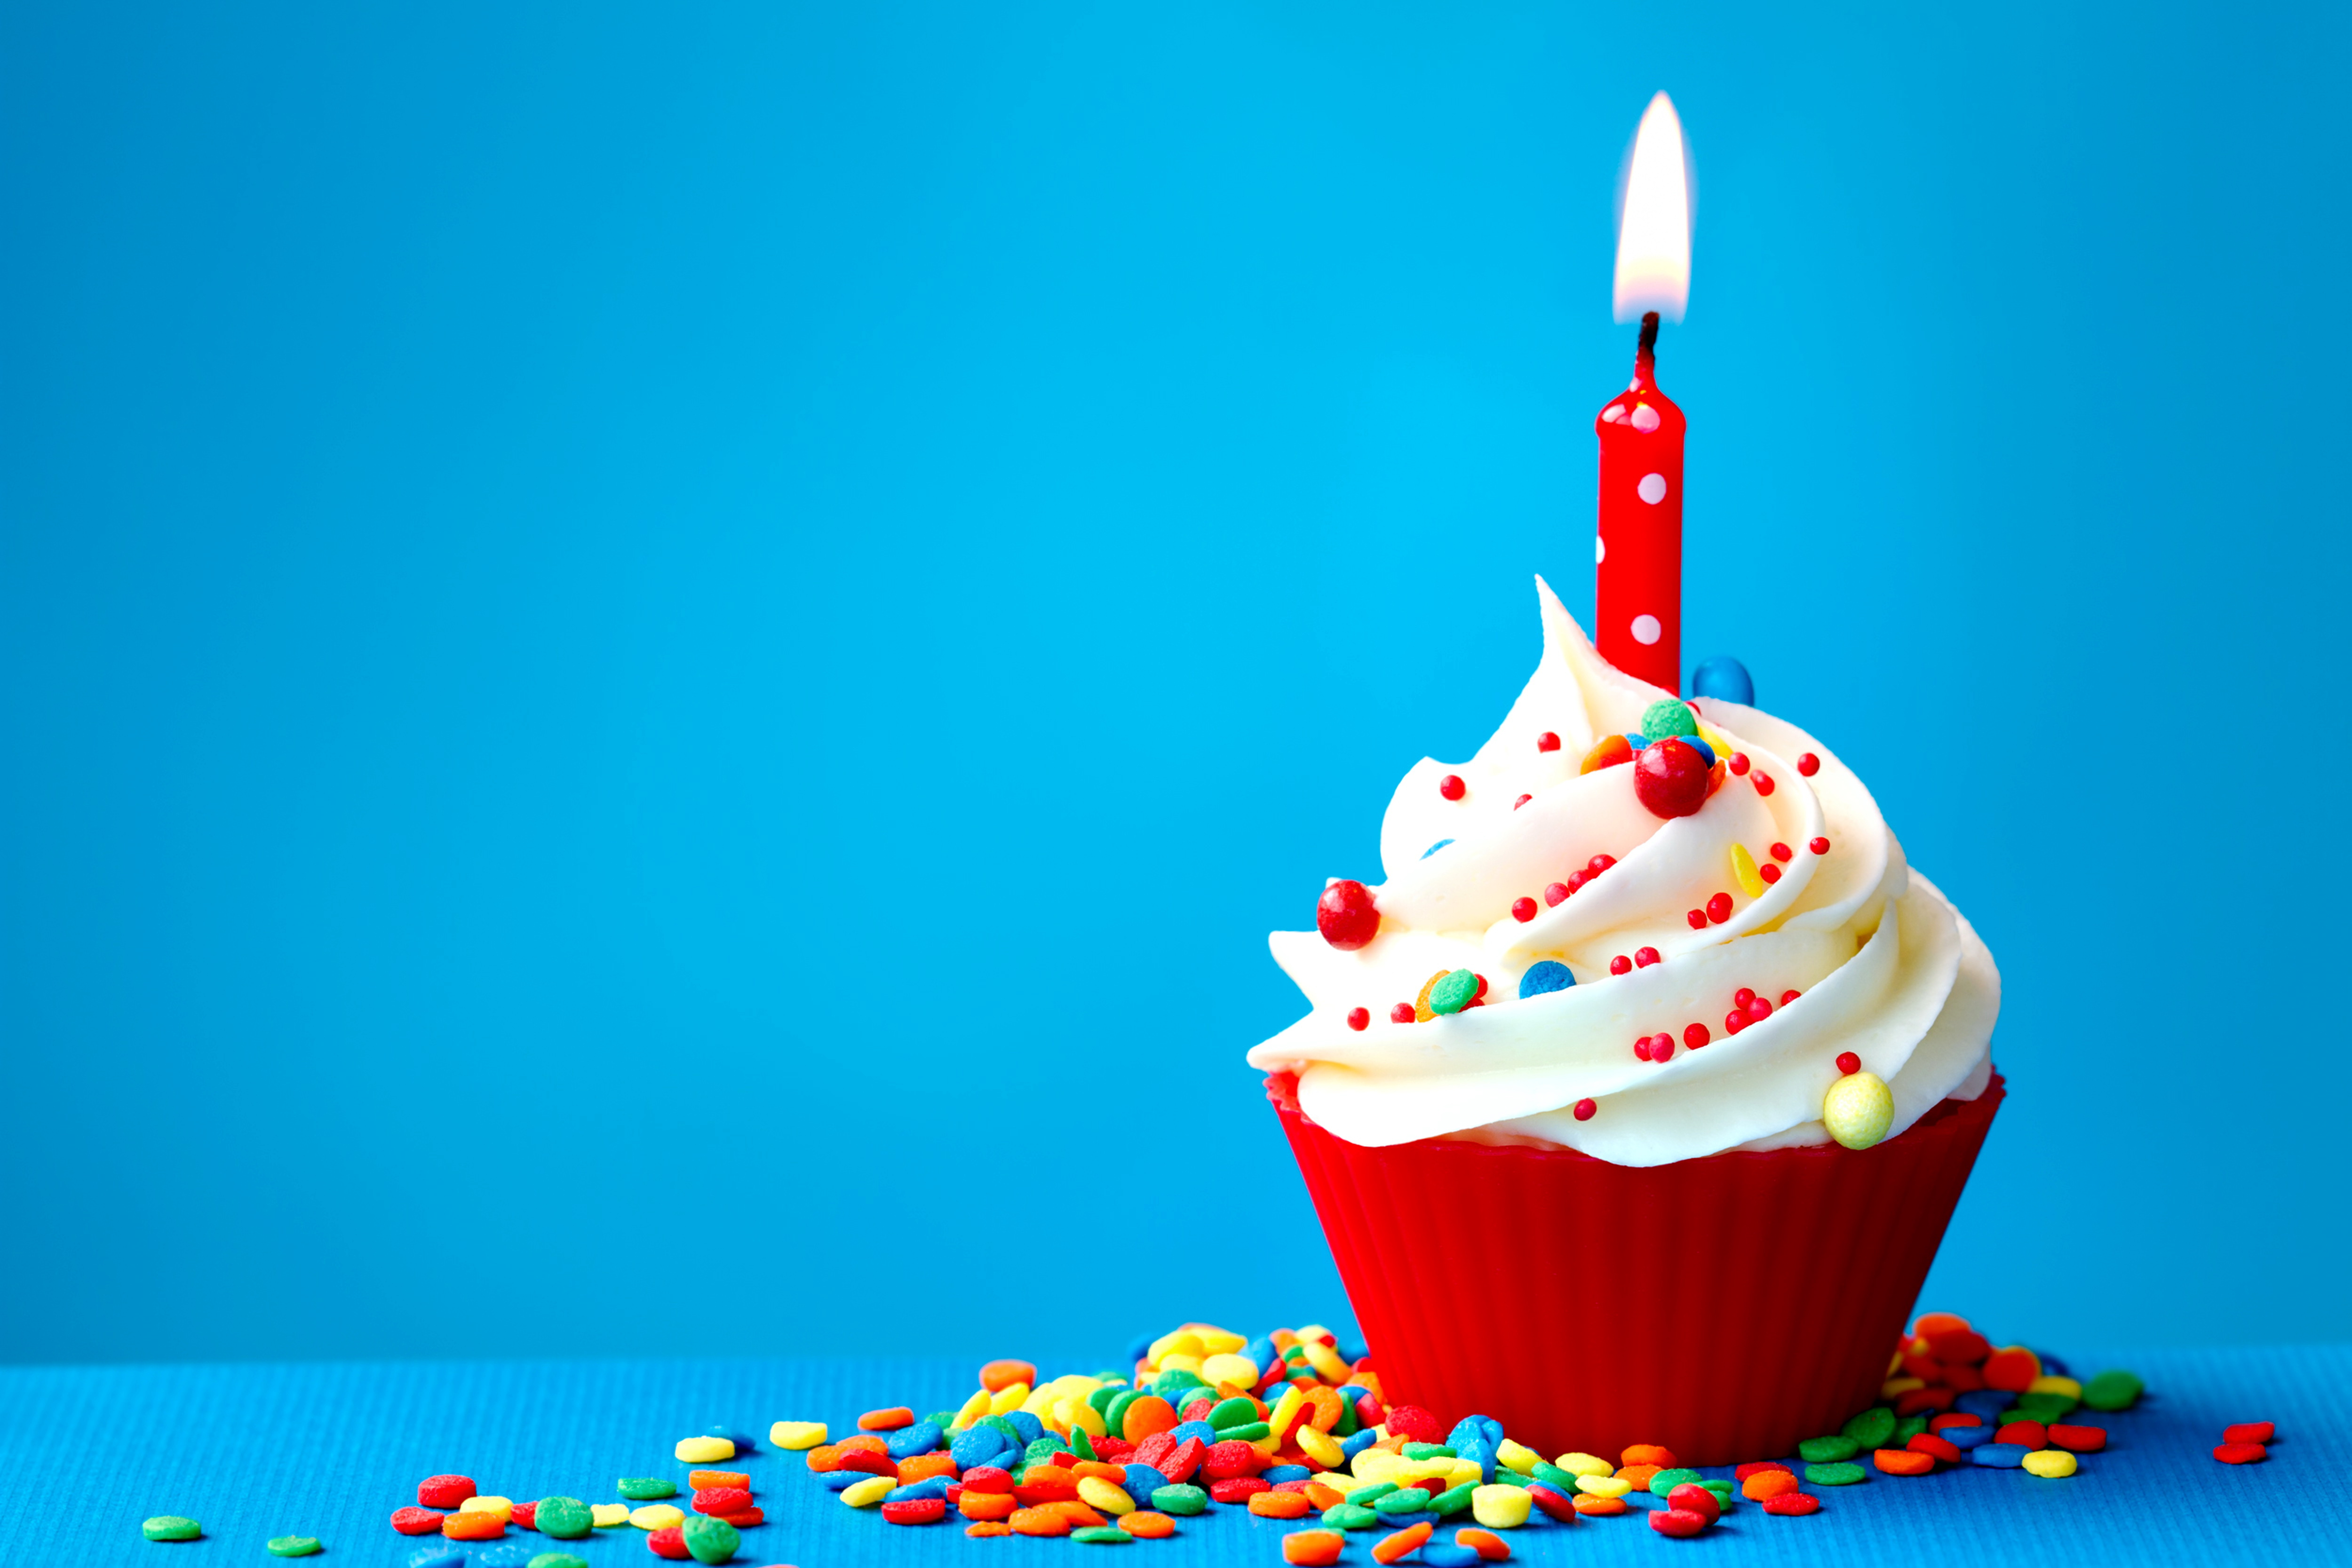 Birthday wallpapers and gifs 5000x3334